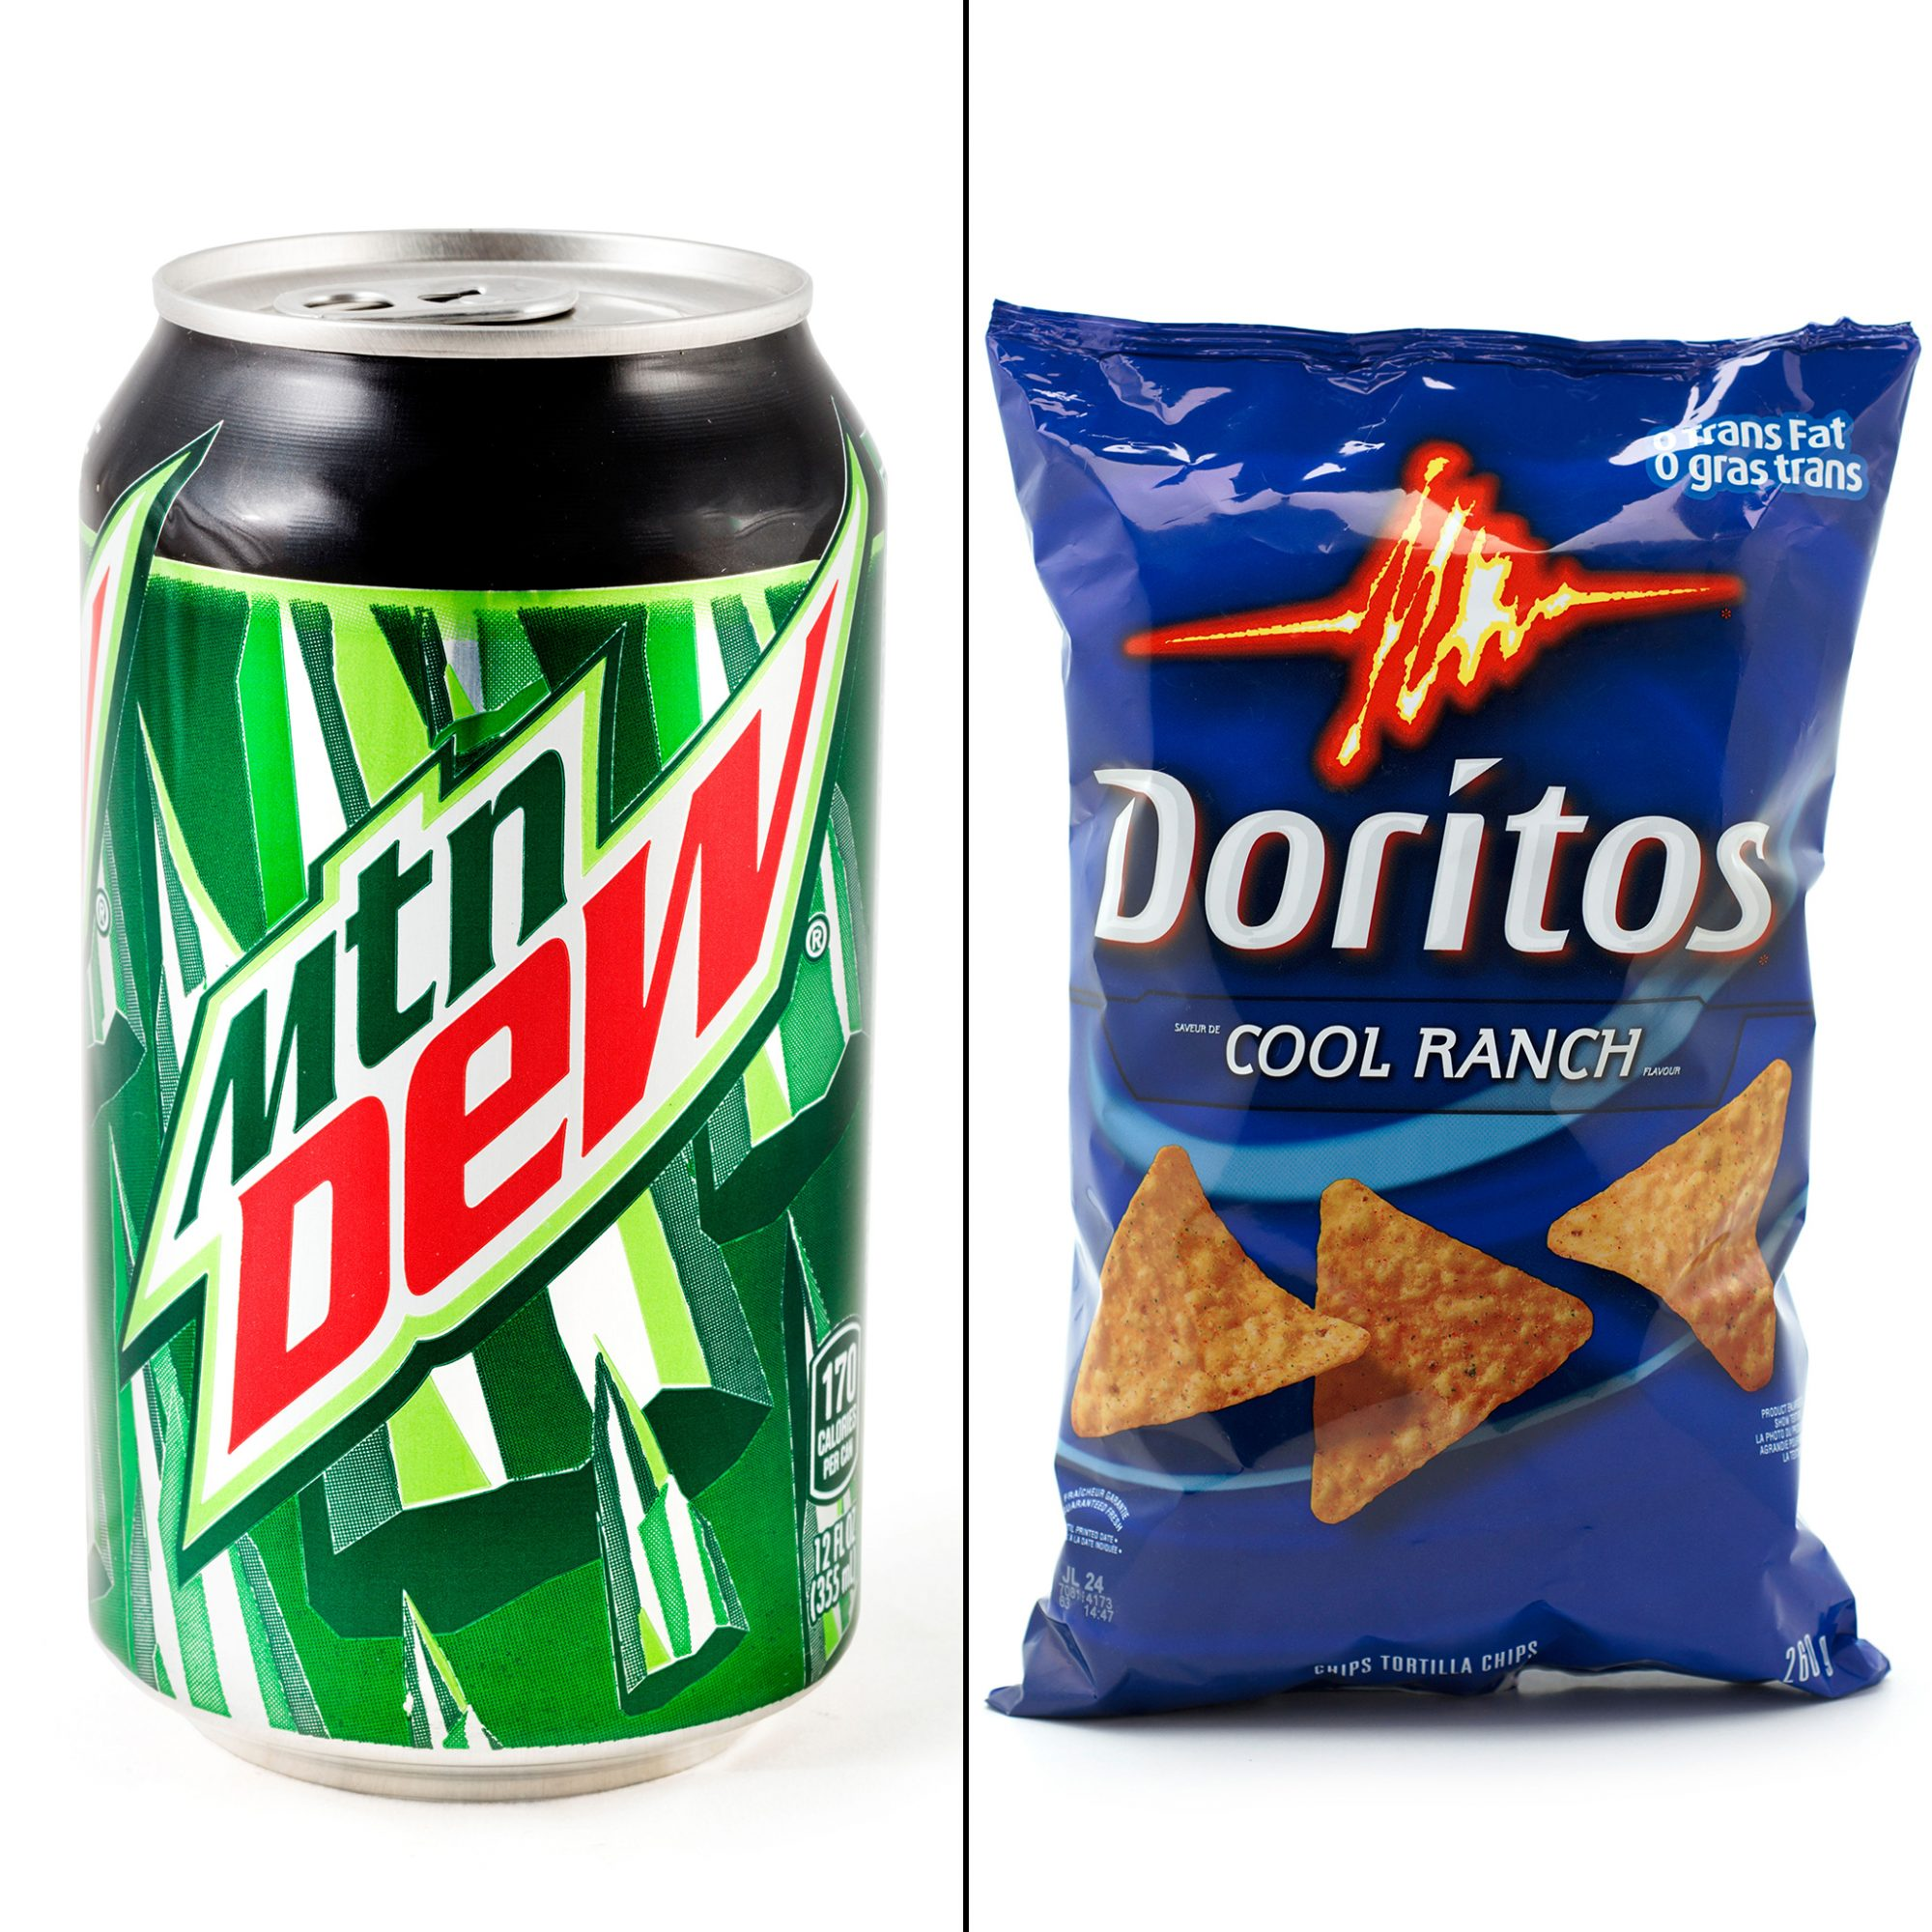 Doritos Flavored Mountain Dew Is Definitely A Real Thing